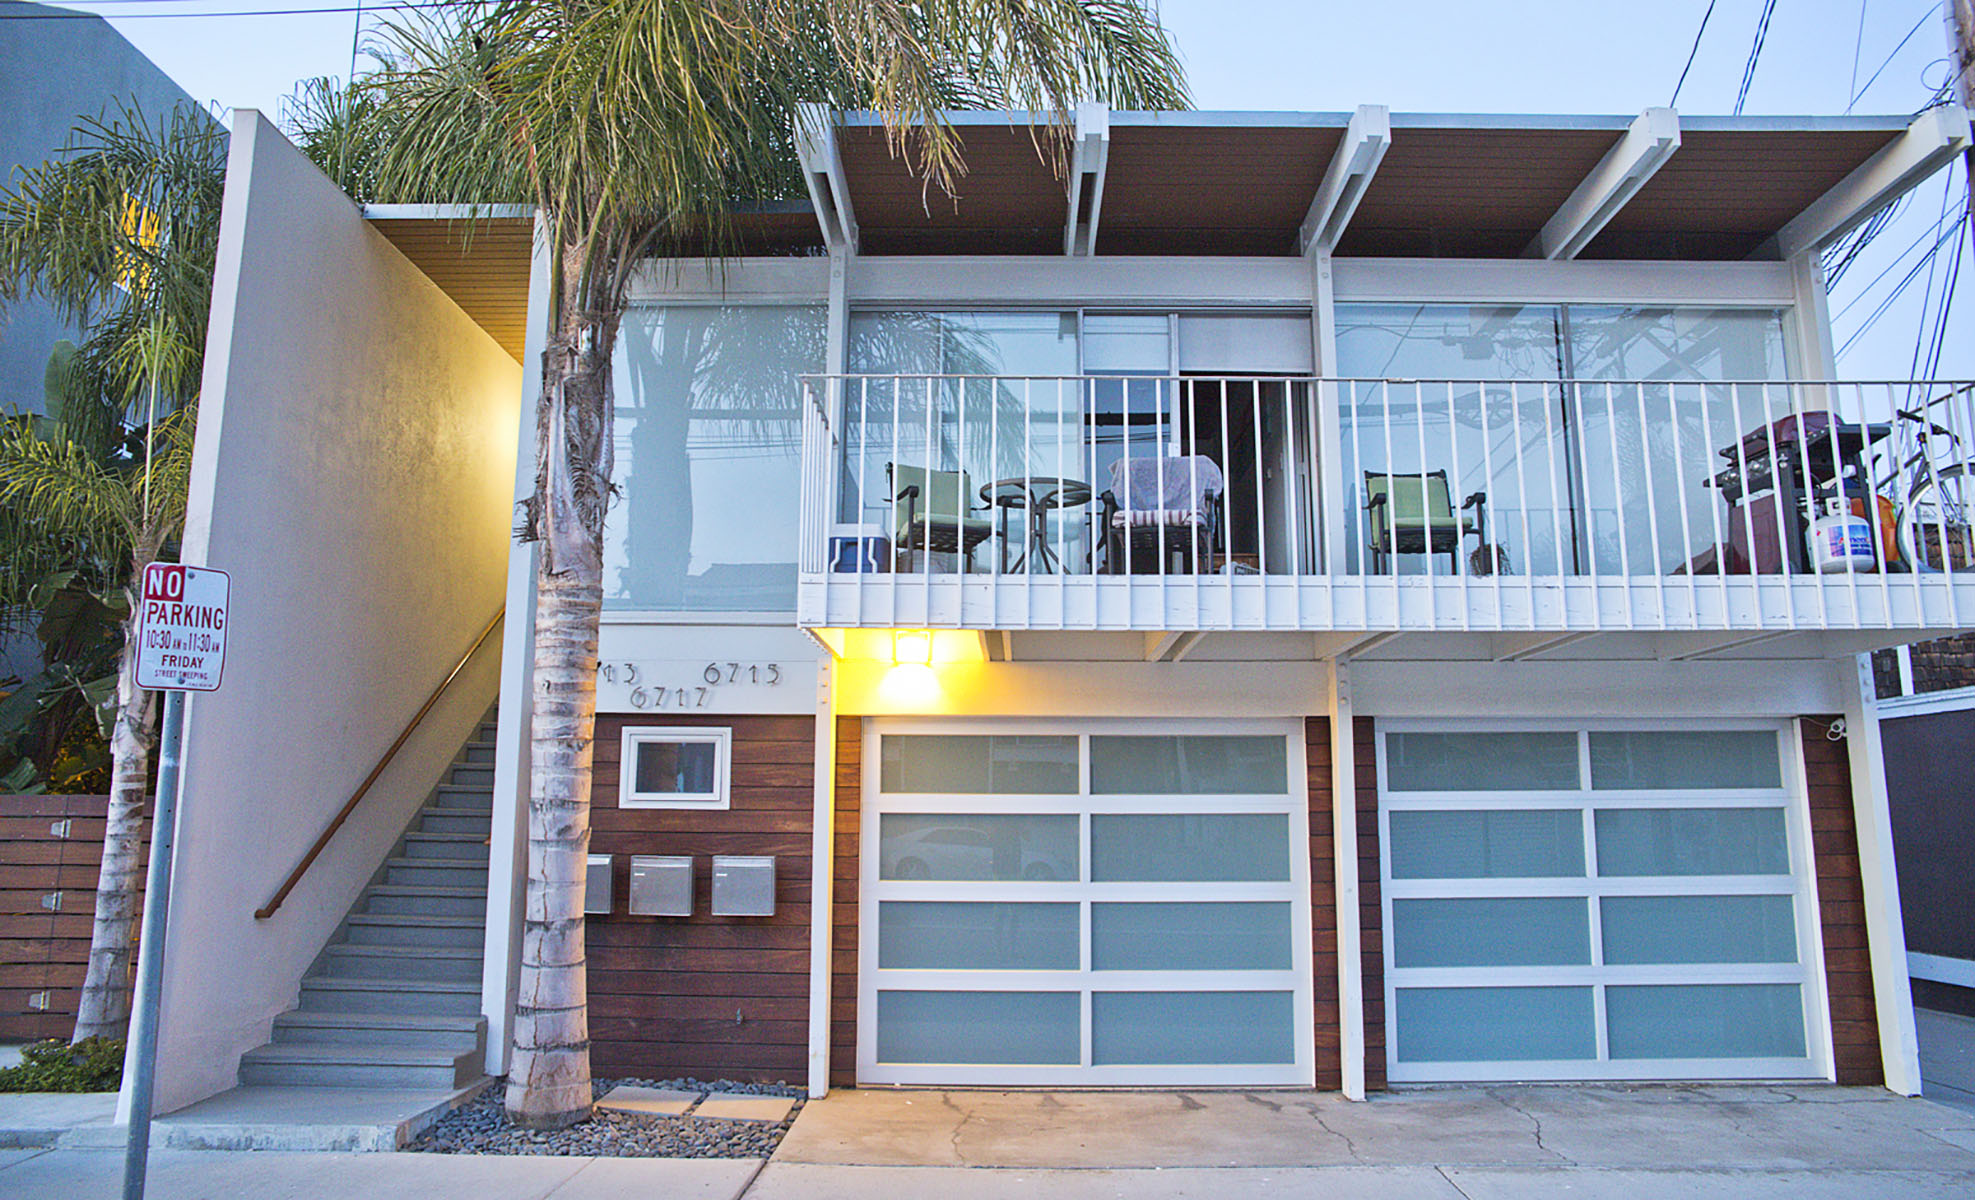 Multi-Family Home for Sale at 6713 East Ocean Blvd Long Beach, California 90803 United States